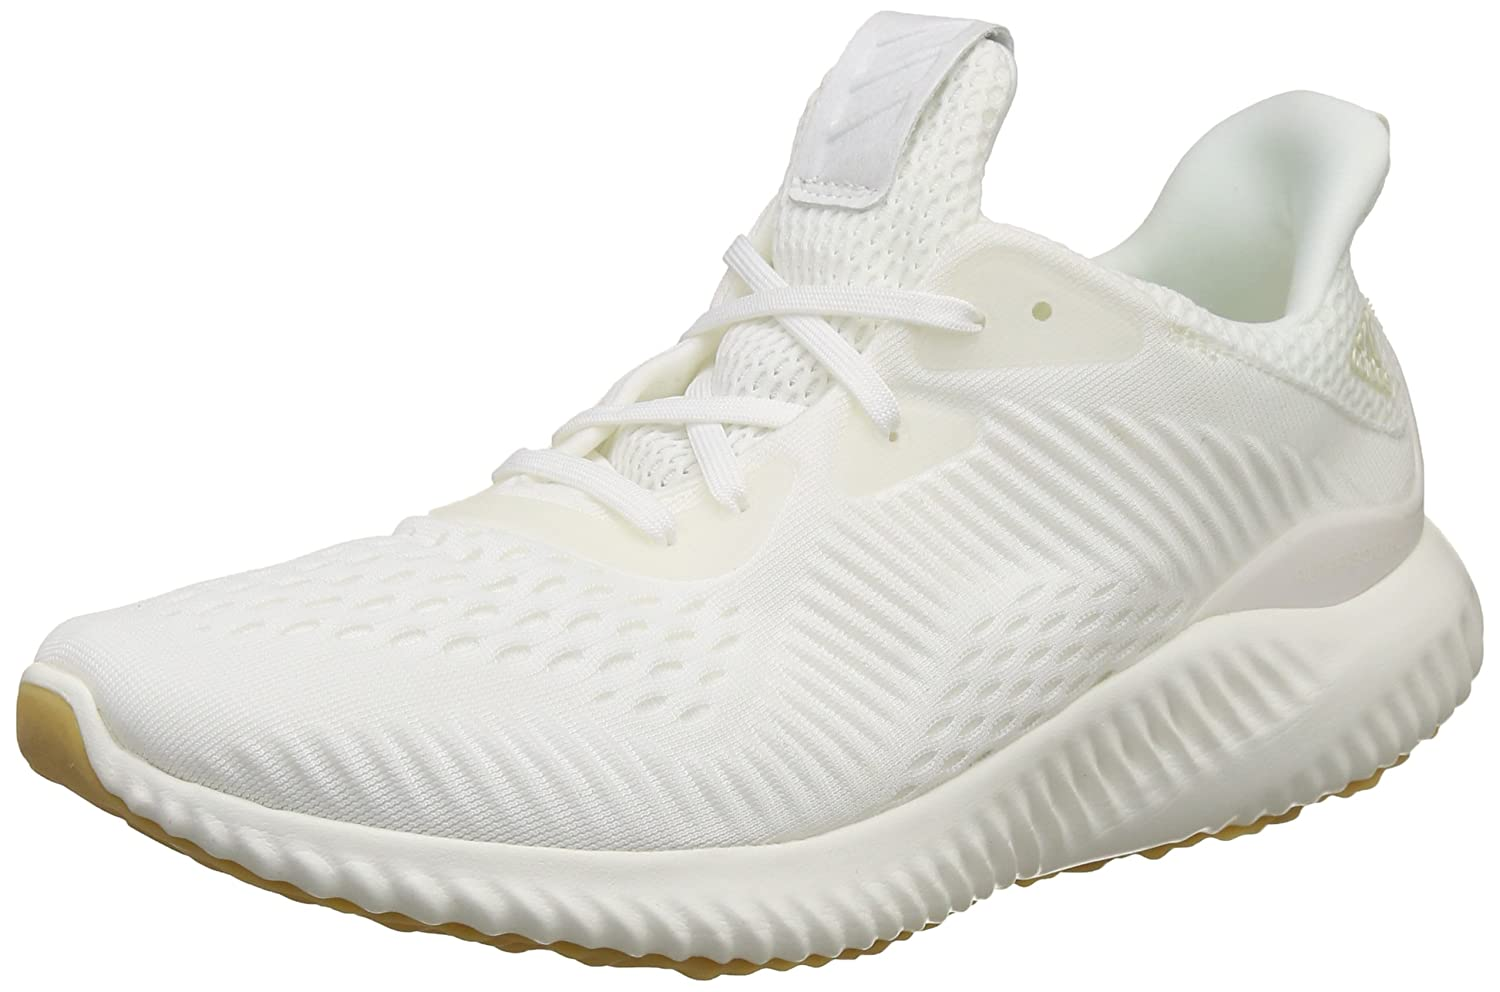 new product 9f3c9 db0c9 Adidas Mens Alphabounce Em Undye M White Running Shoes-11 UKIndia (46.11  EU) (BW1225) Buy Online at Low Prices in India - Amazon.in